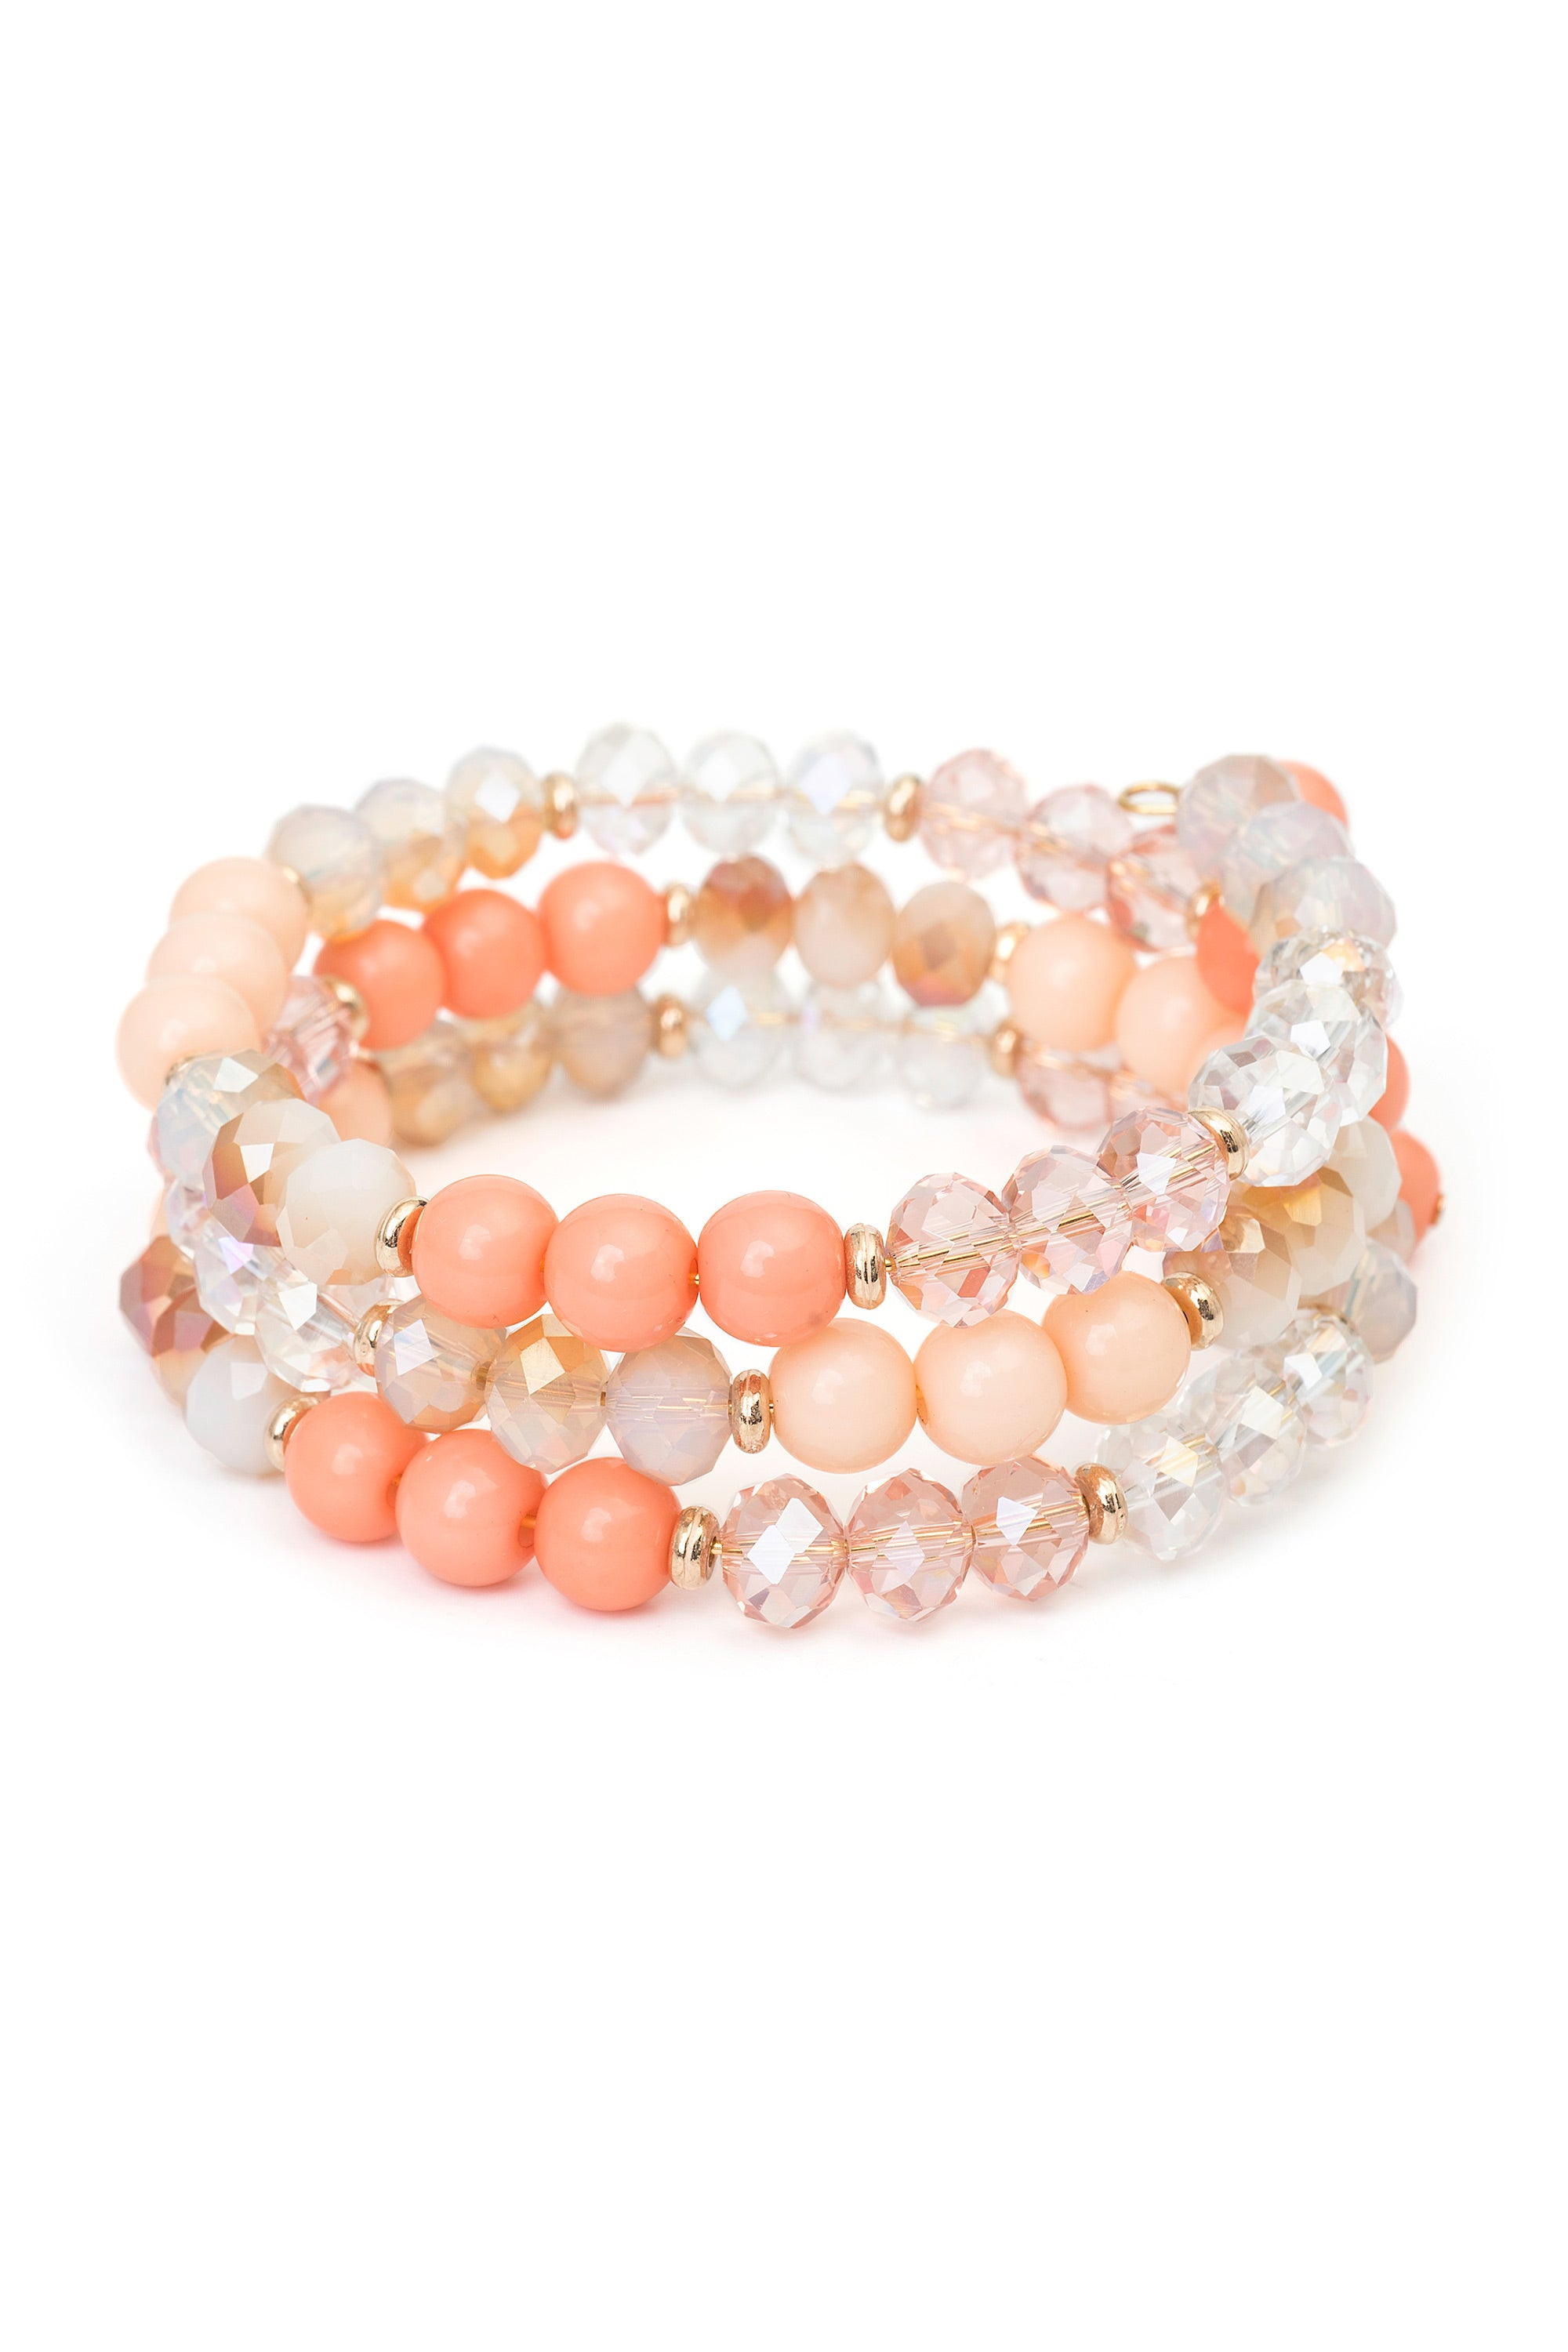 Type 1 Peaches 'N Cream Bracelet